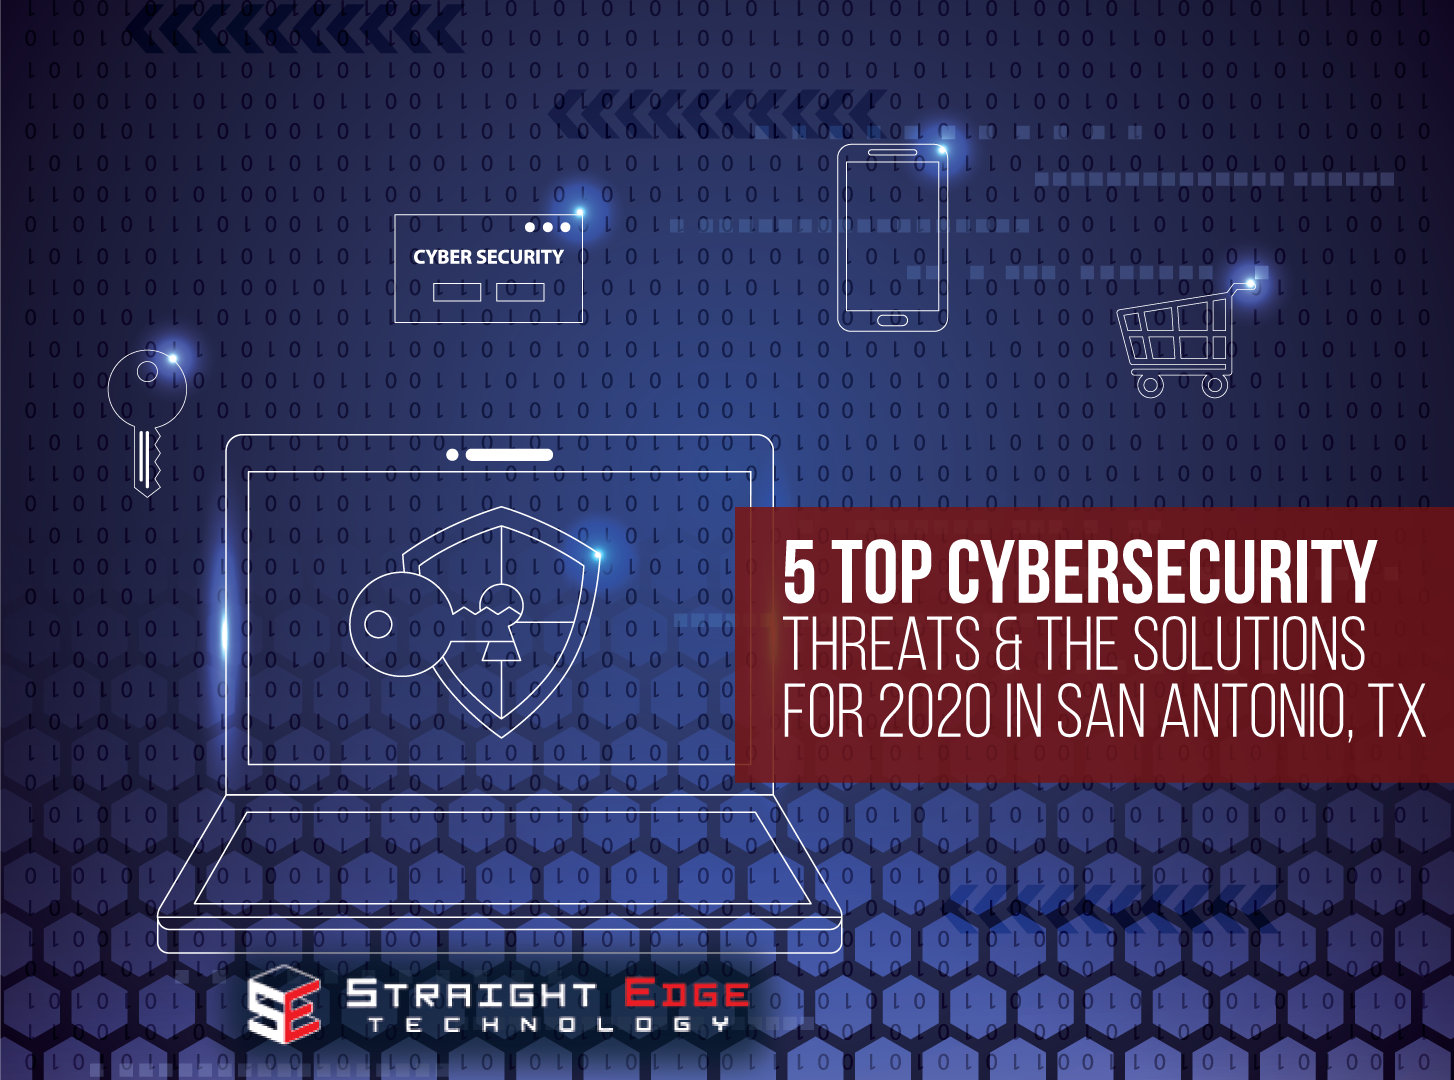 5 Top Cybersecurity Threats & Their Solutions for 2020 4